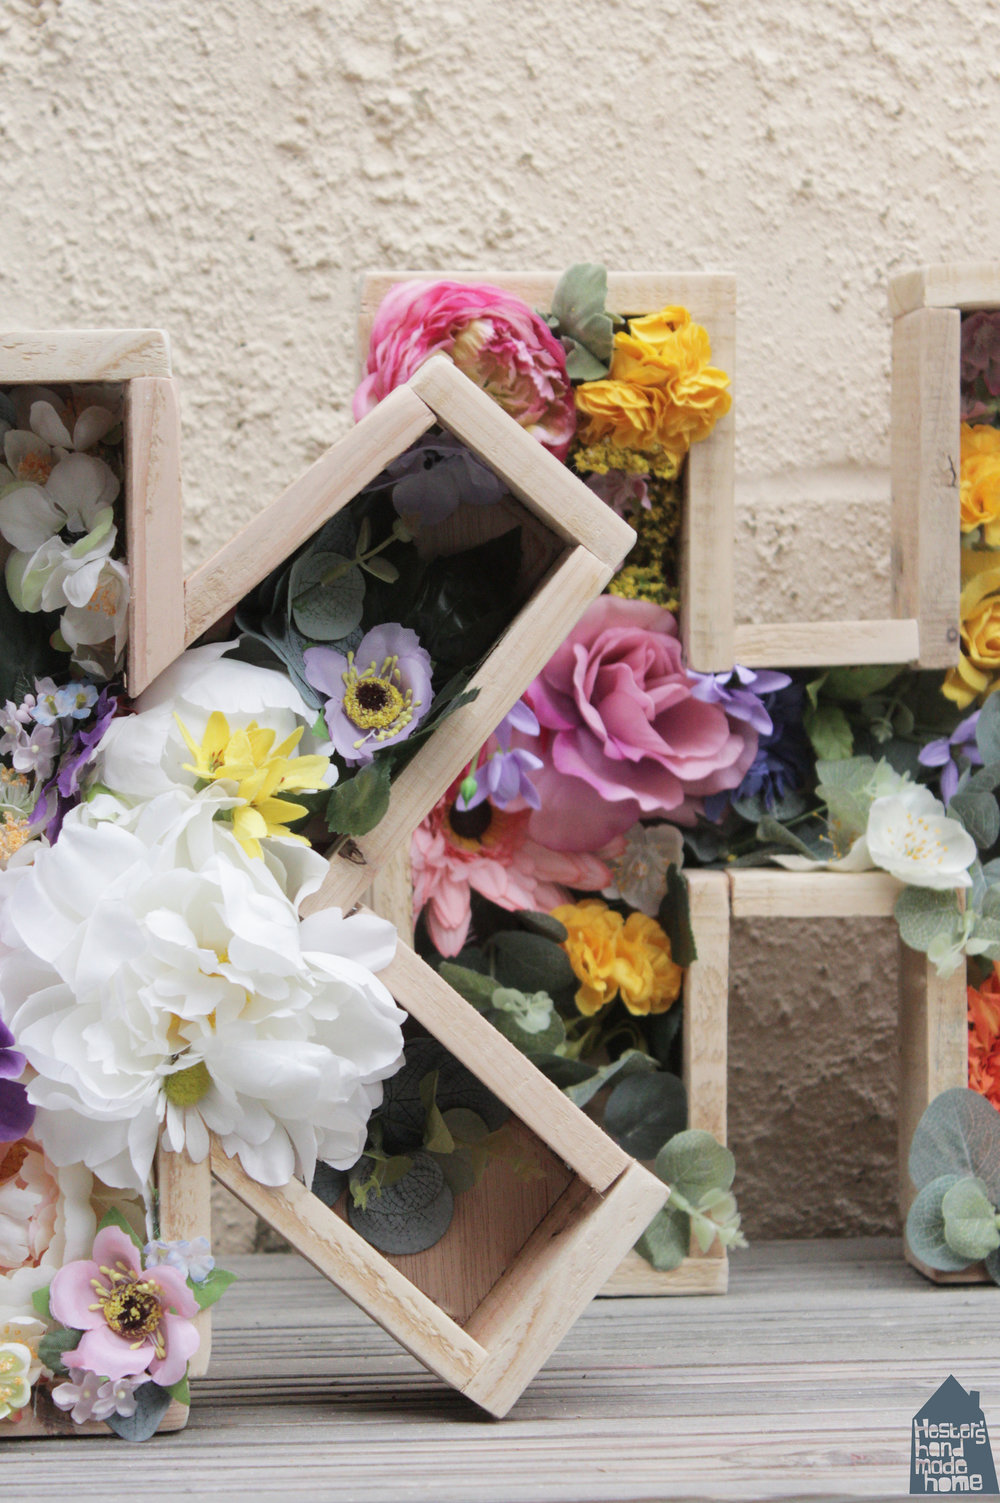 Pallet wood letter planters filled with faux flowers, tutorial by Hester's Handmade Home taken from her latest book Pallet Wood Projects for Outdoor Spaces